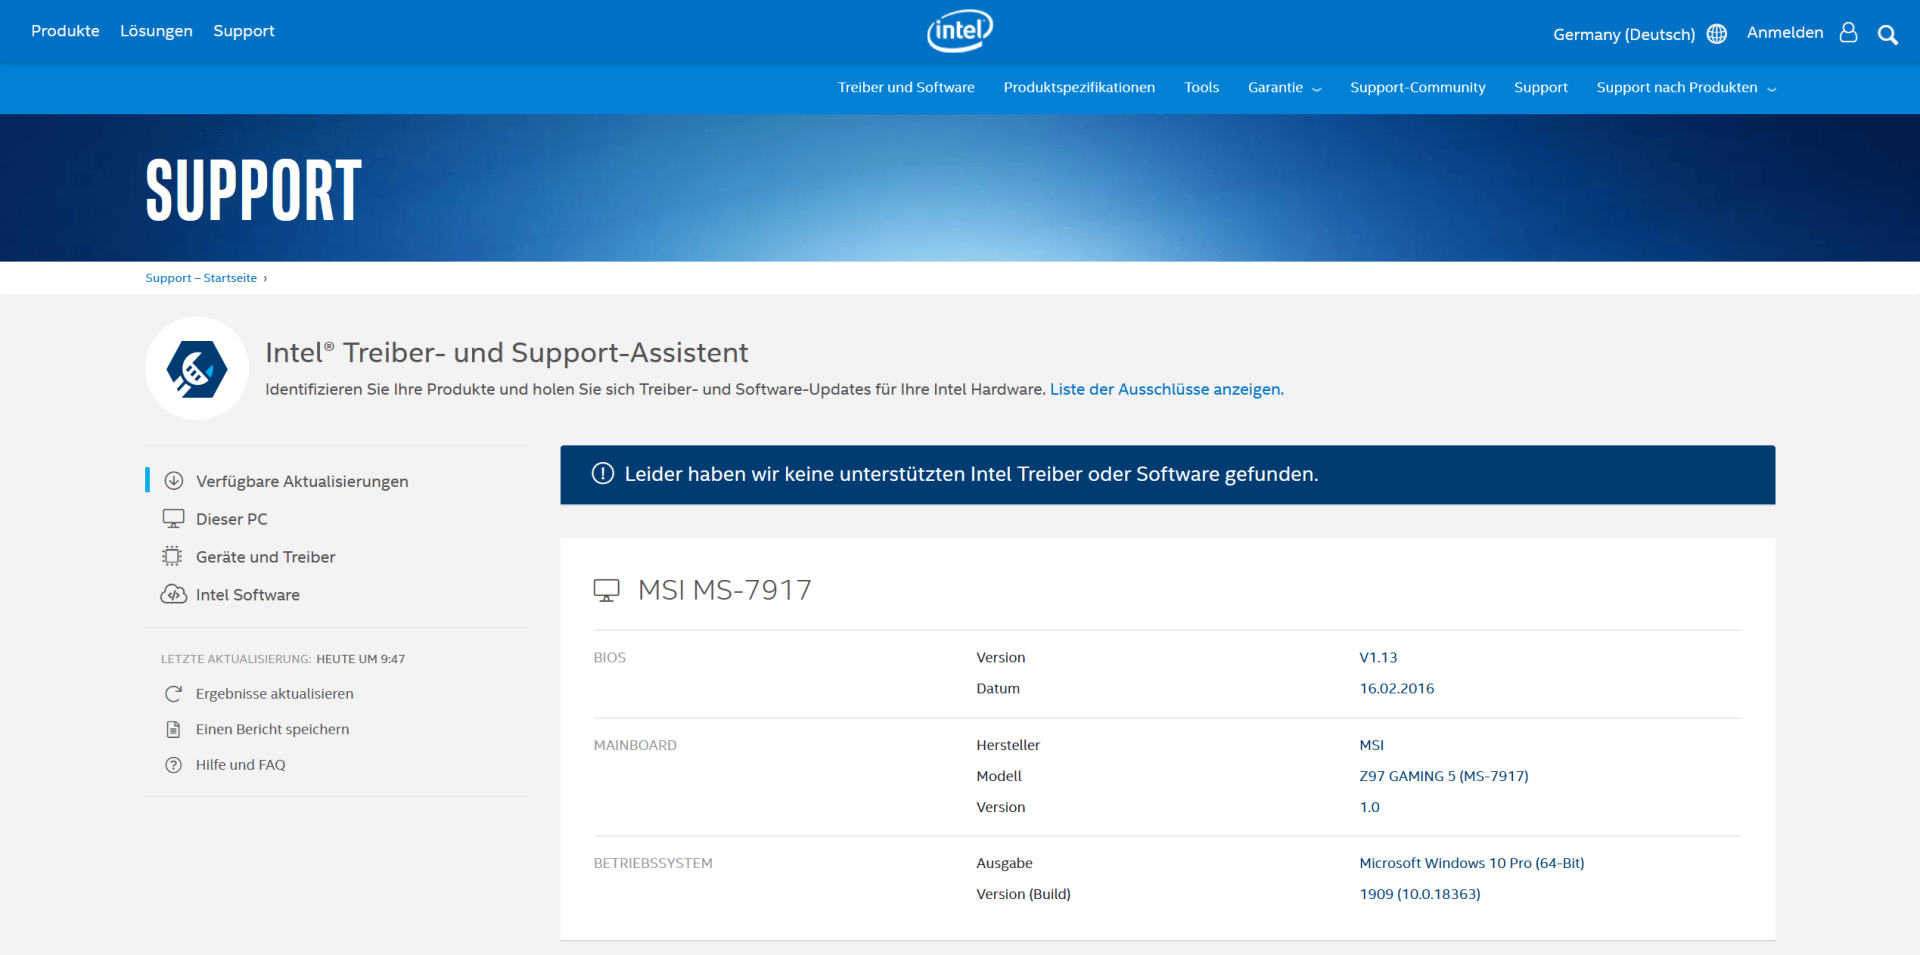 Intel Treiber- und Support-Assistent